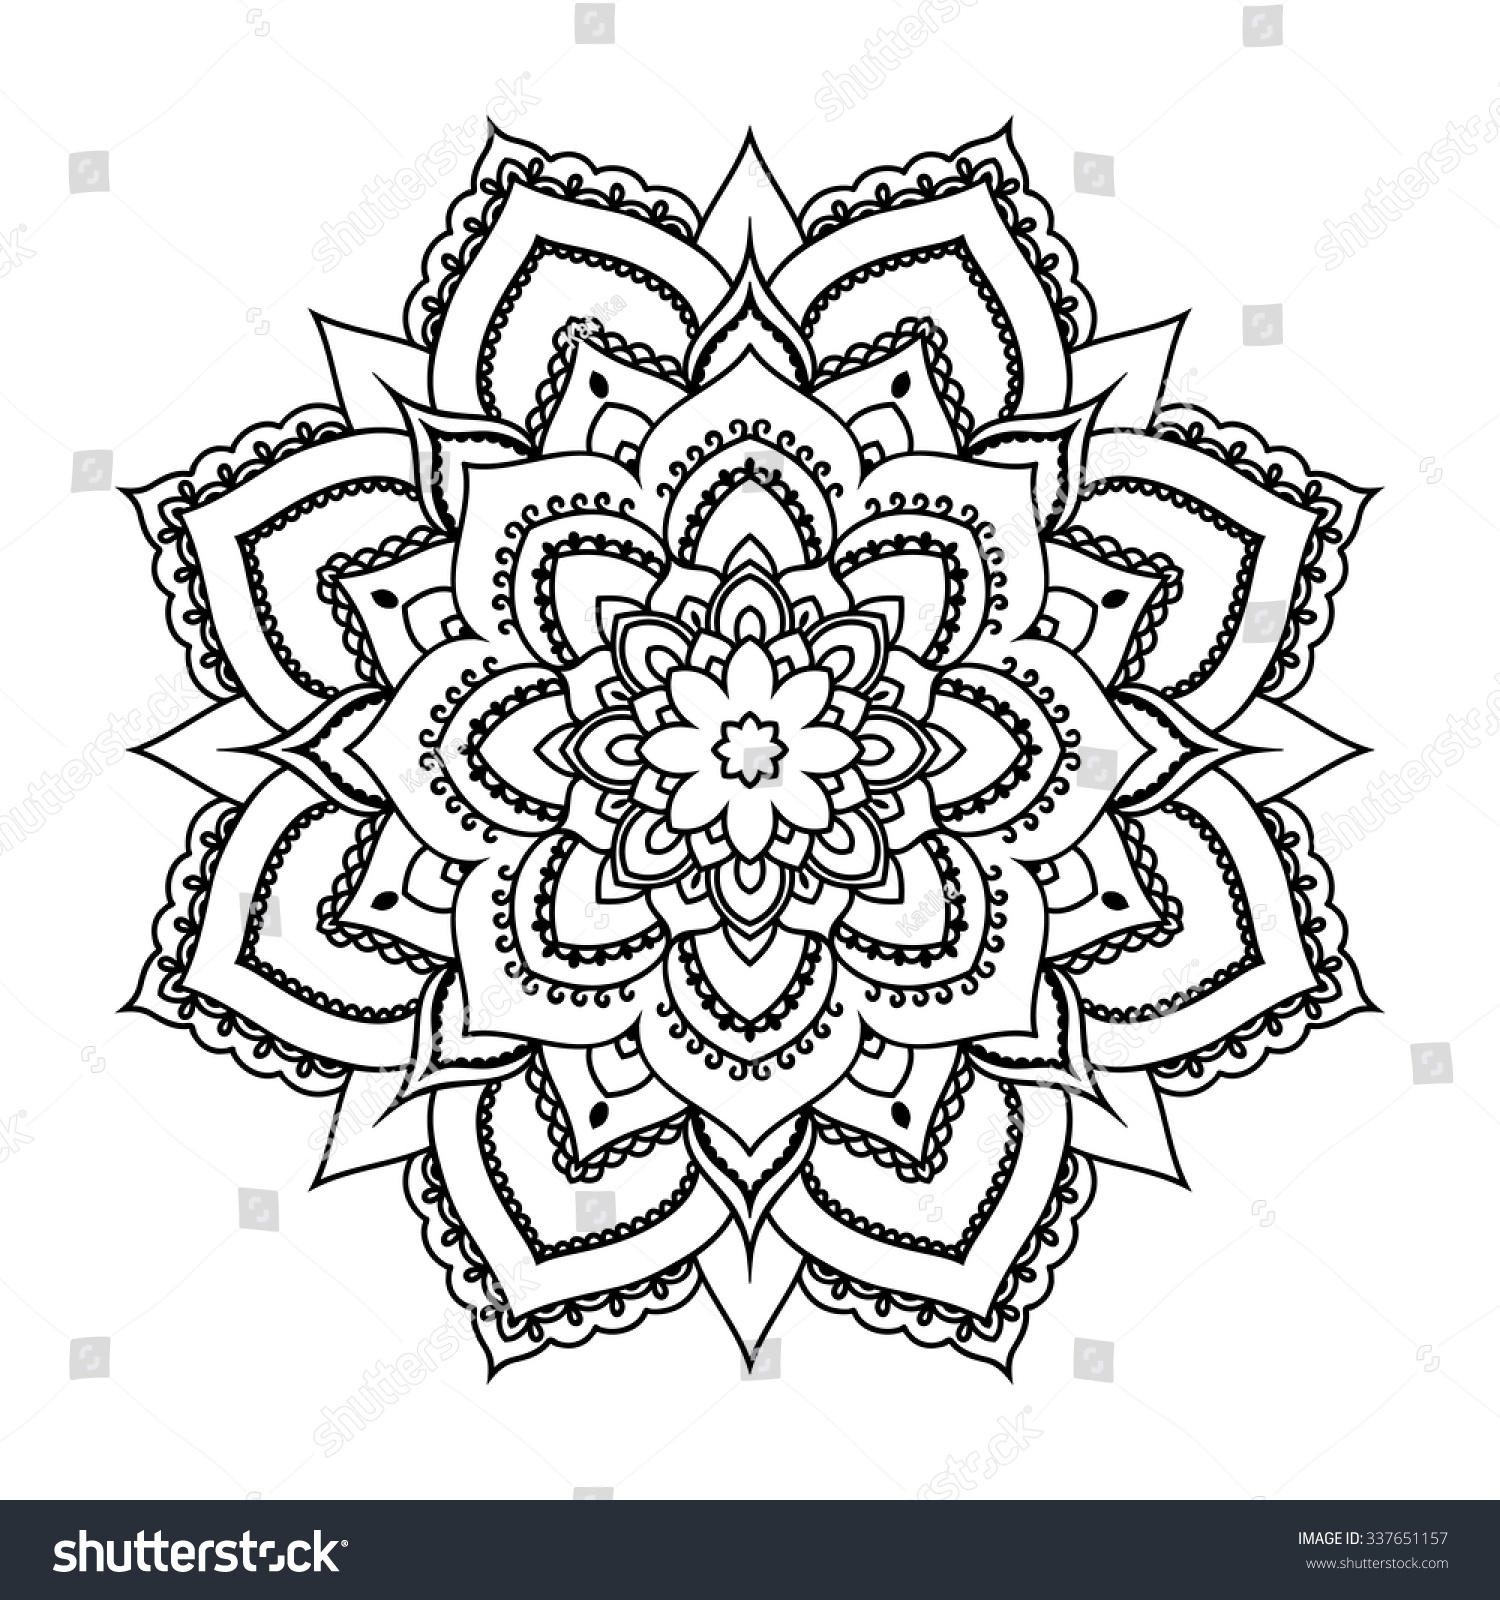 Cross mandala coloring pages